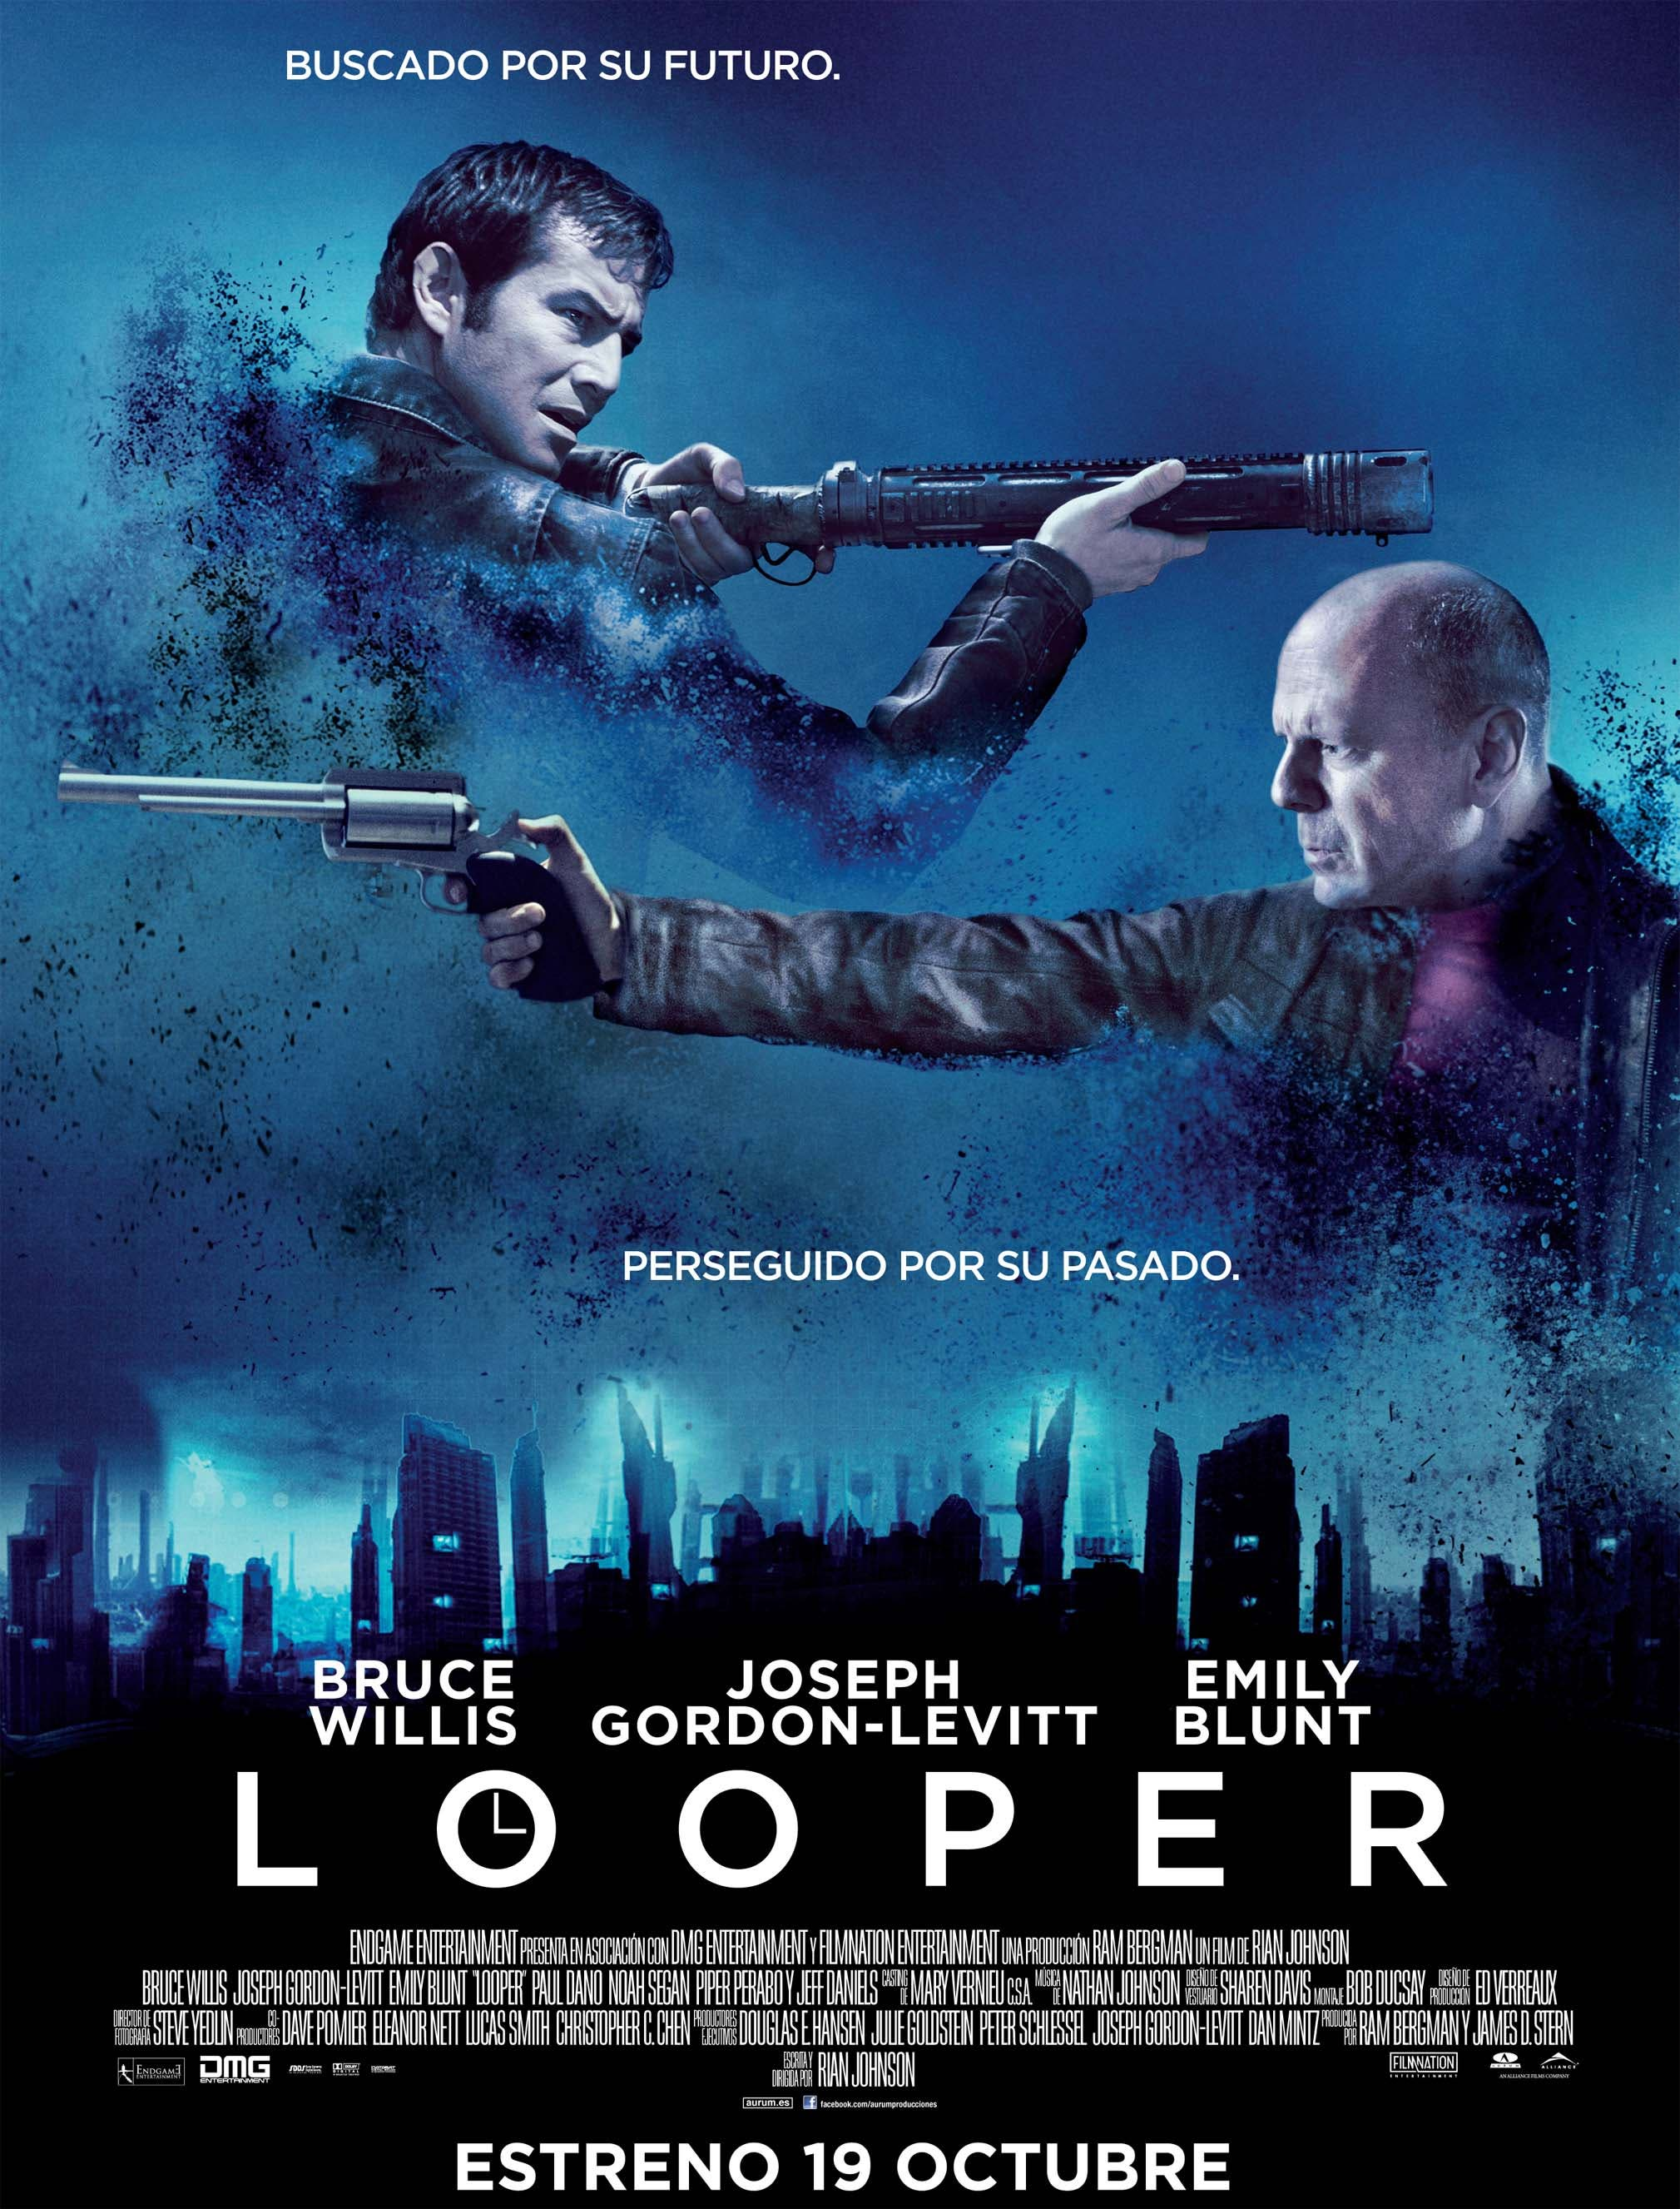 LOOPER CARTEL